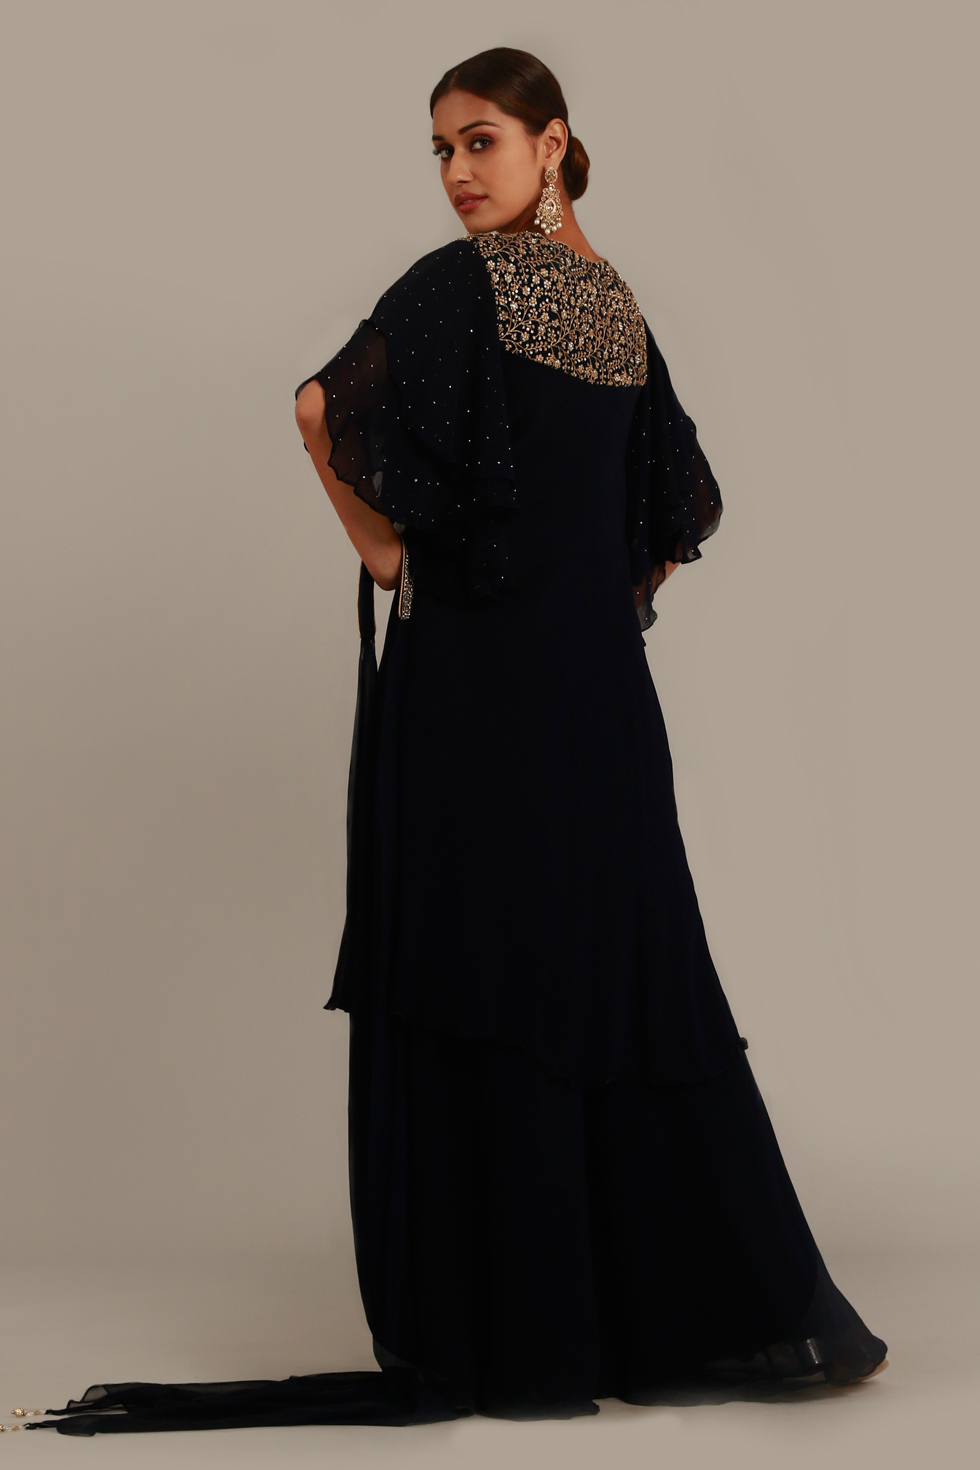 Raven black long top with palazzo pants, tiered ruffled sleeves, gold embellishments on the yoke and matching necklace dupatta